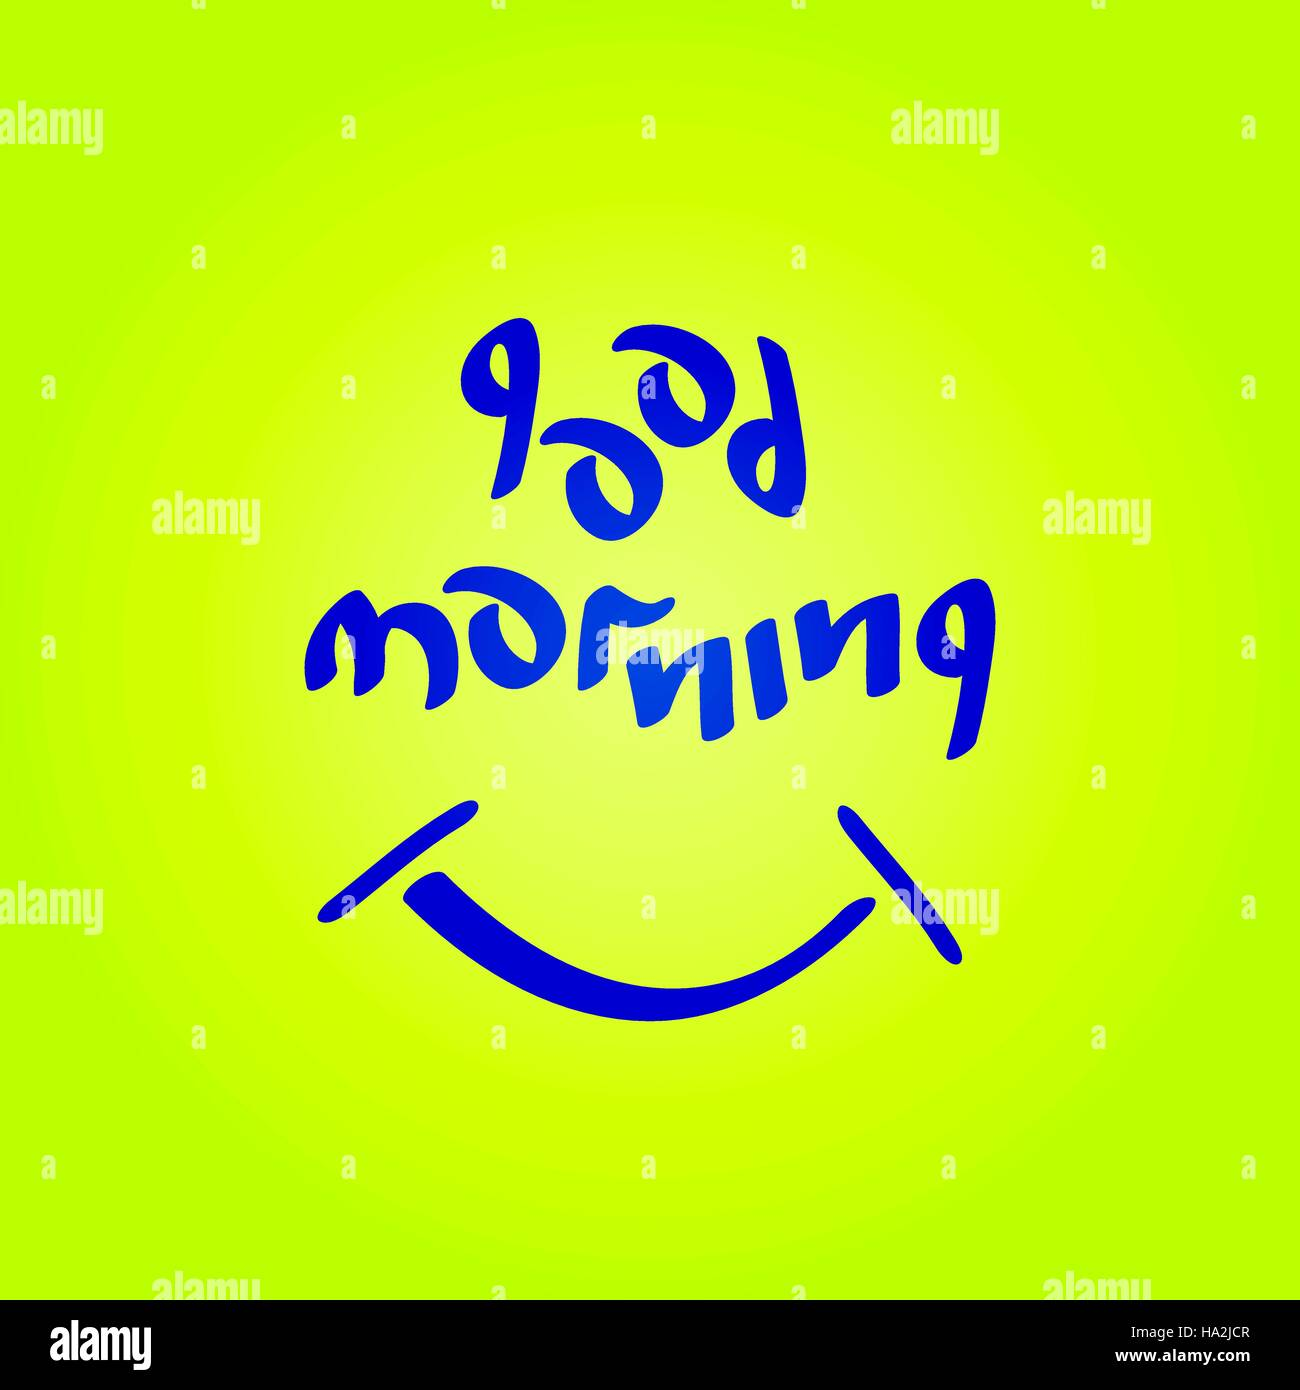 Good Morning Text With Smiling Symbol Fun Positive Mood Vector Stock